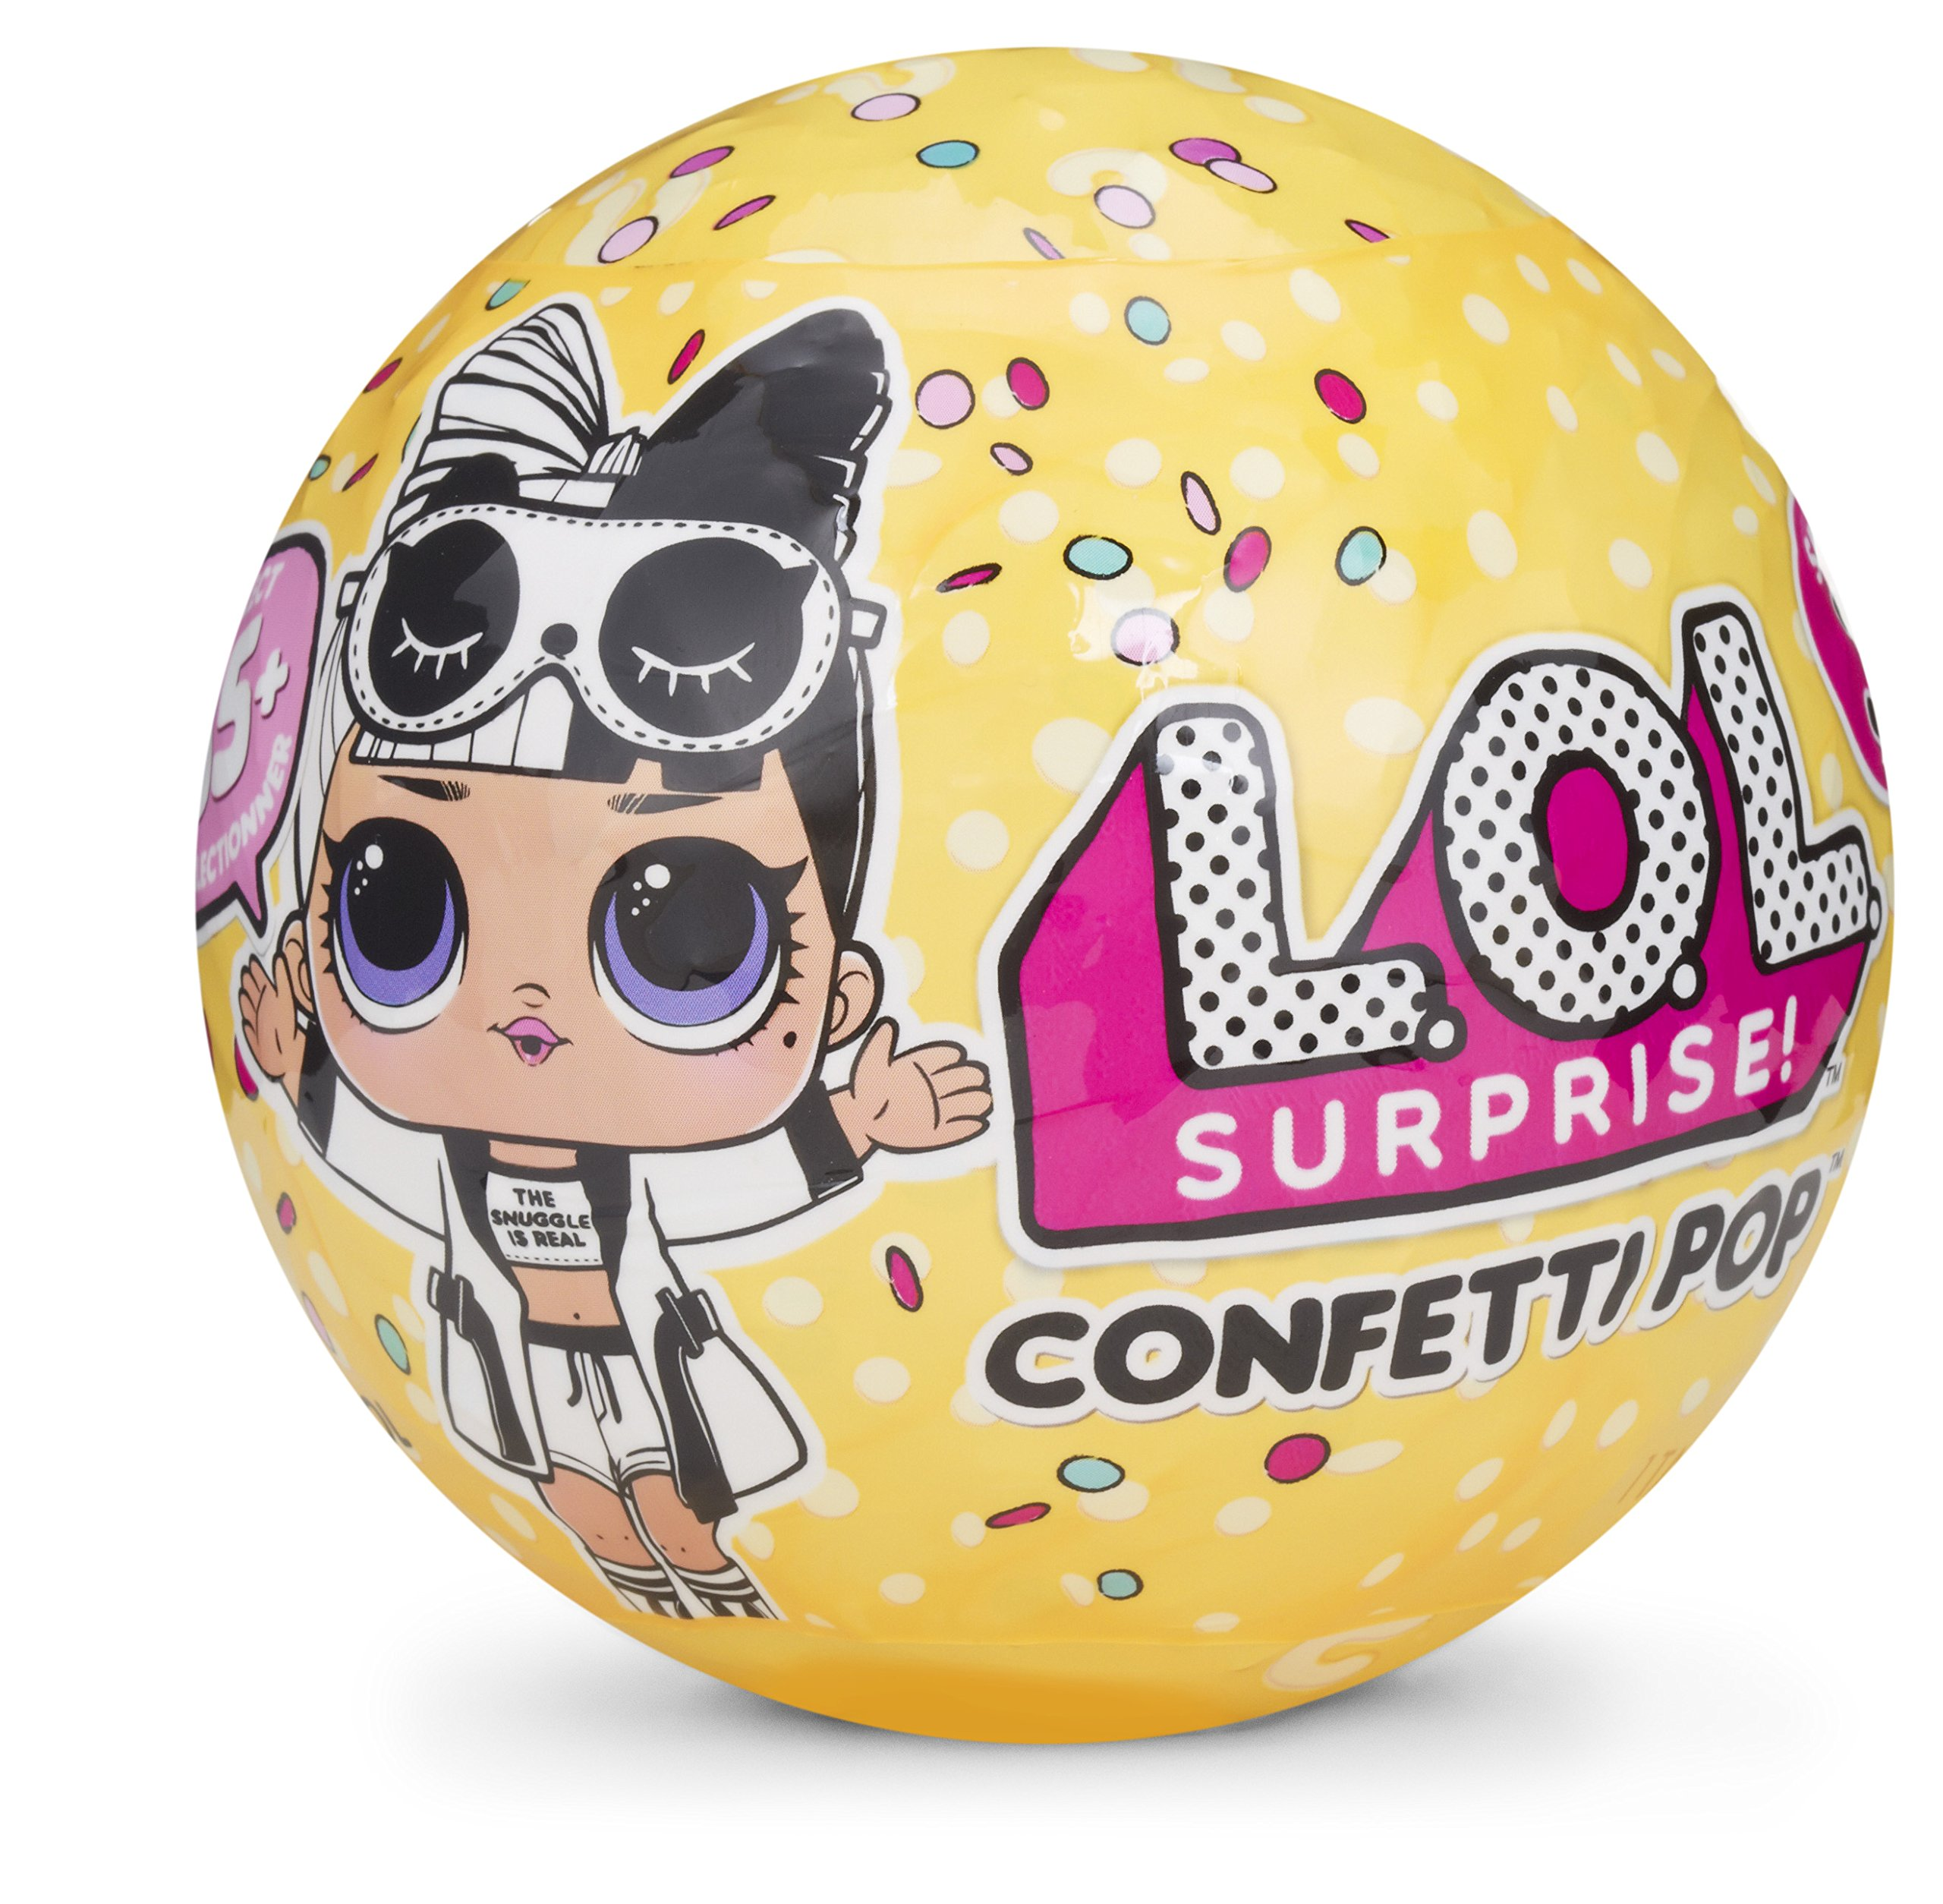 L O L Surprise! Confetti Pop Series 3 - As Seen on TV UK products